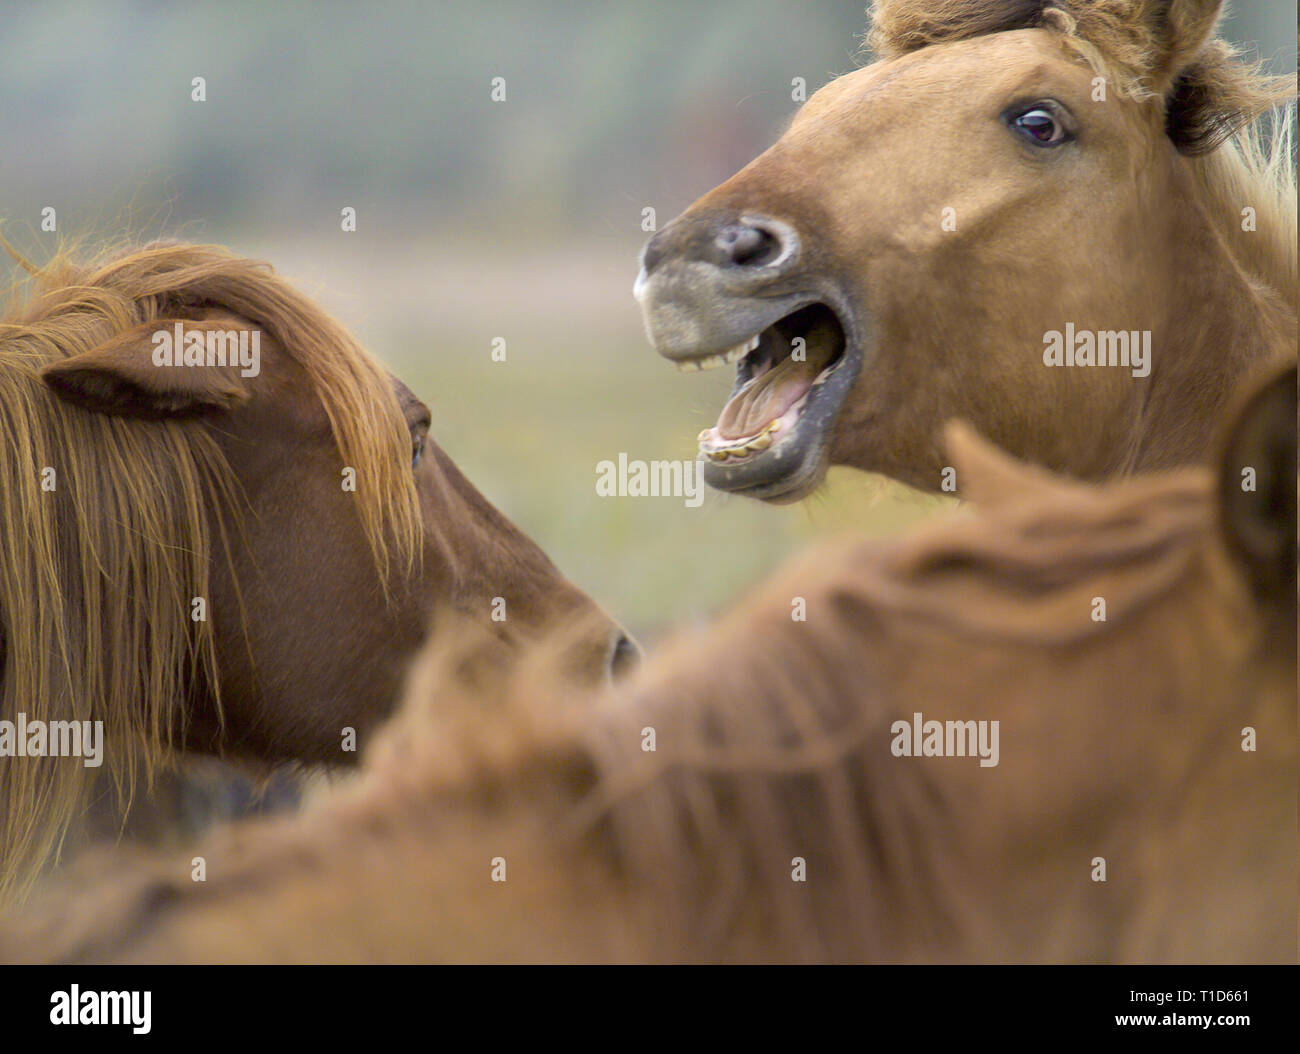 Two Spanish Mustang mares having an argument with teeth